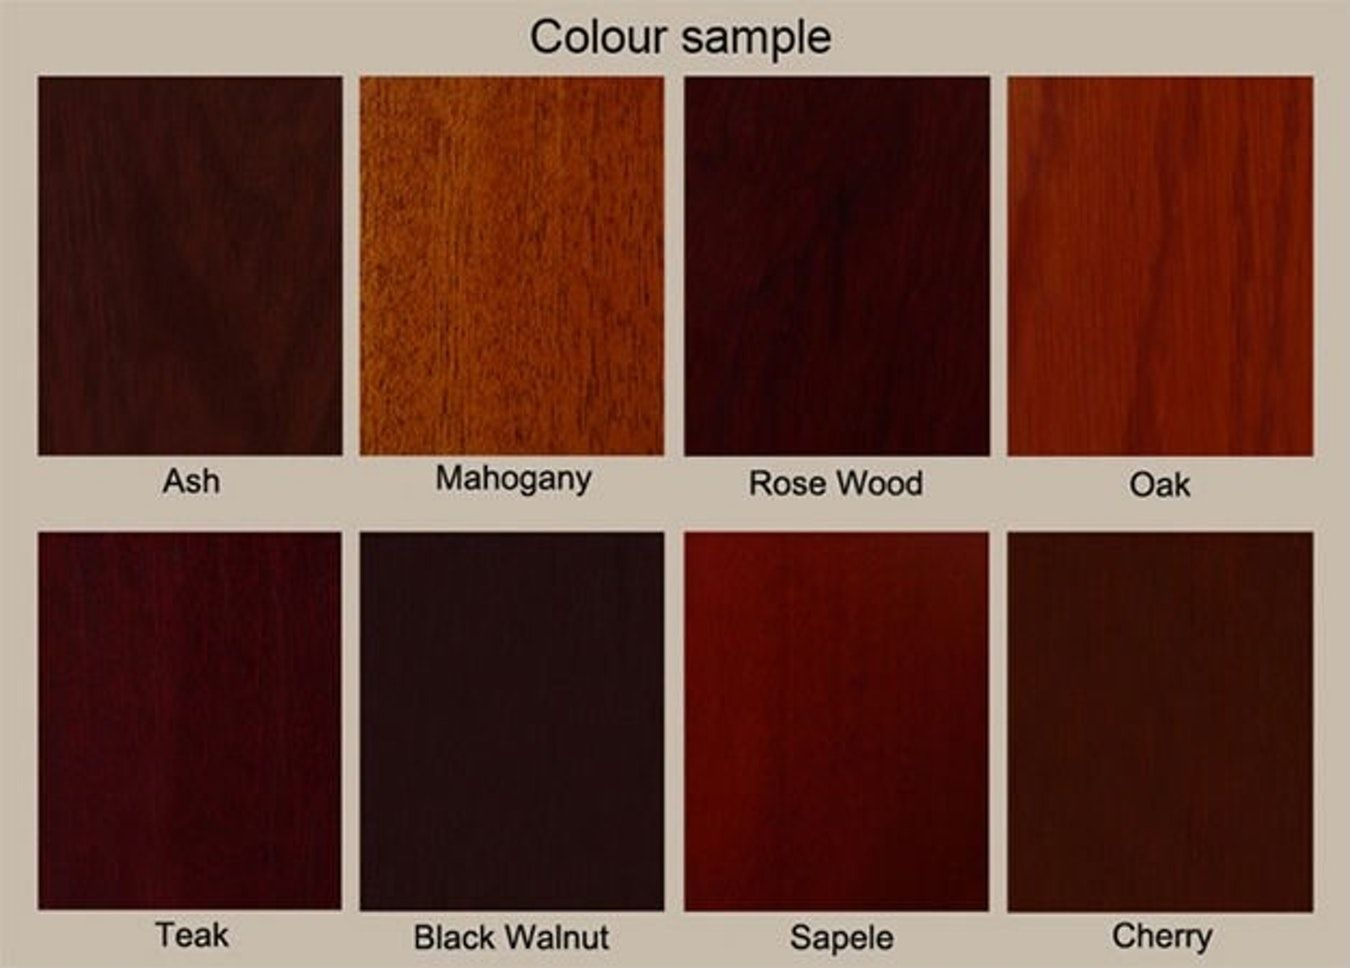 Pin By Mary Sigalas On Inspiration For The Home Wood Colors Door Color Paint Colors